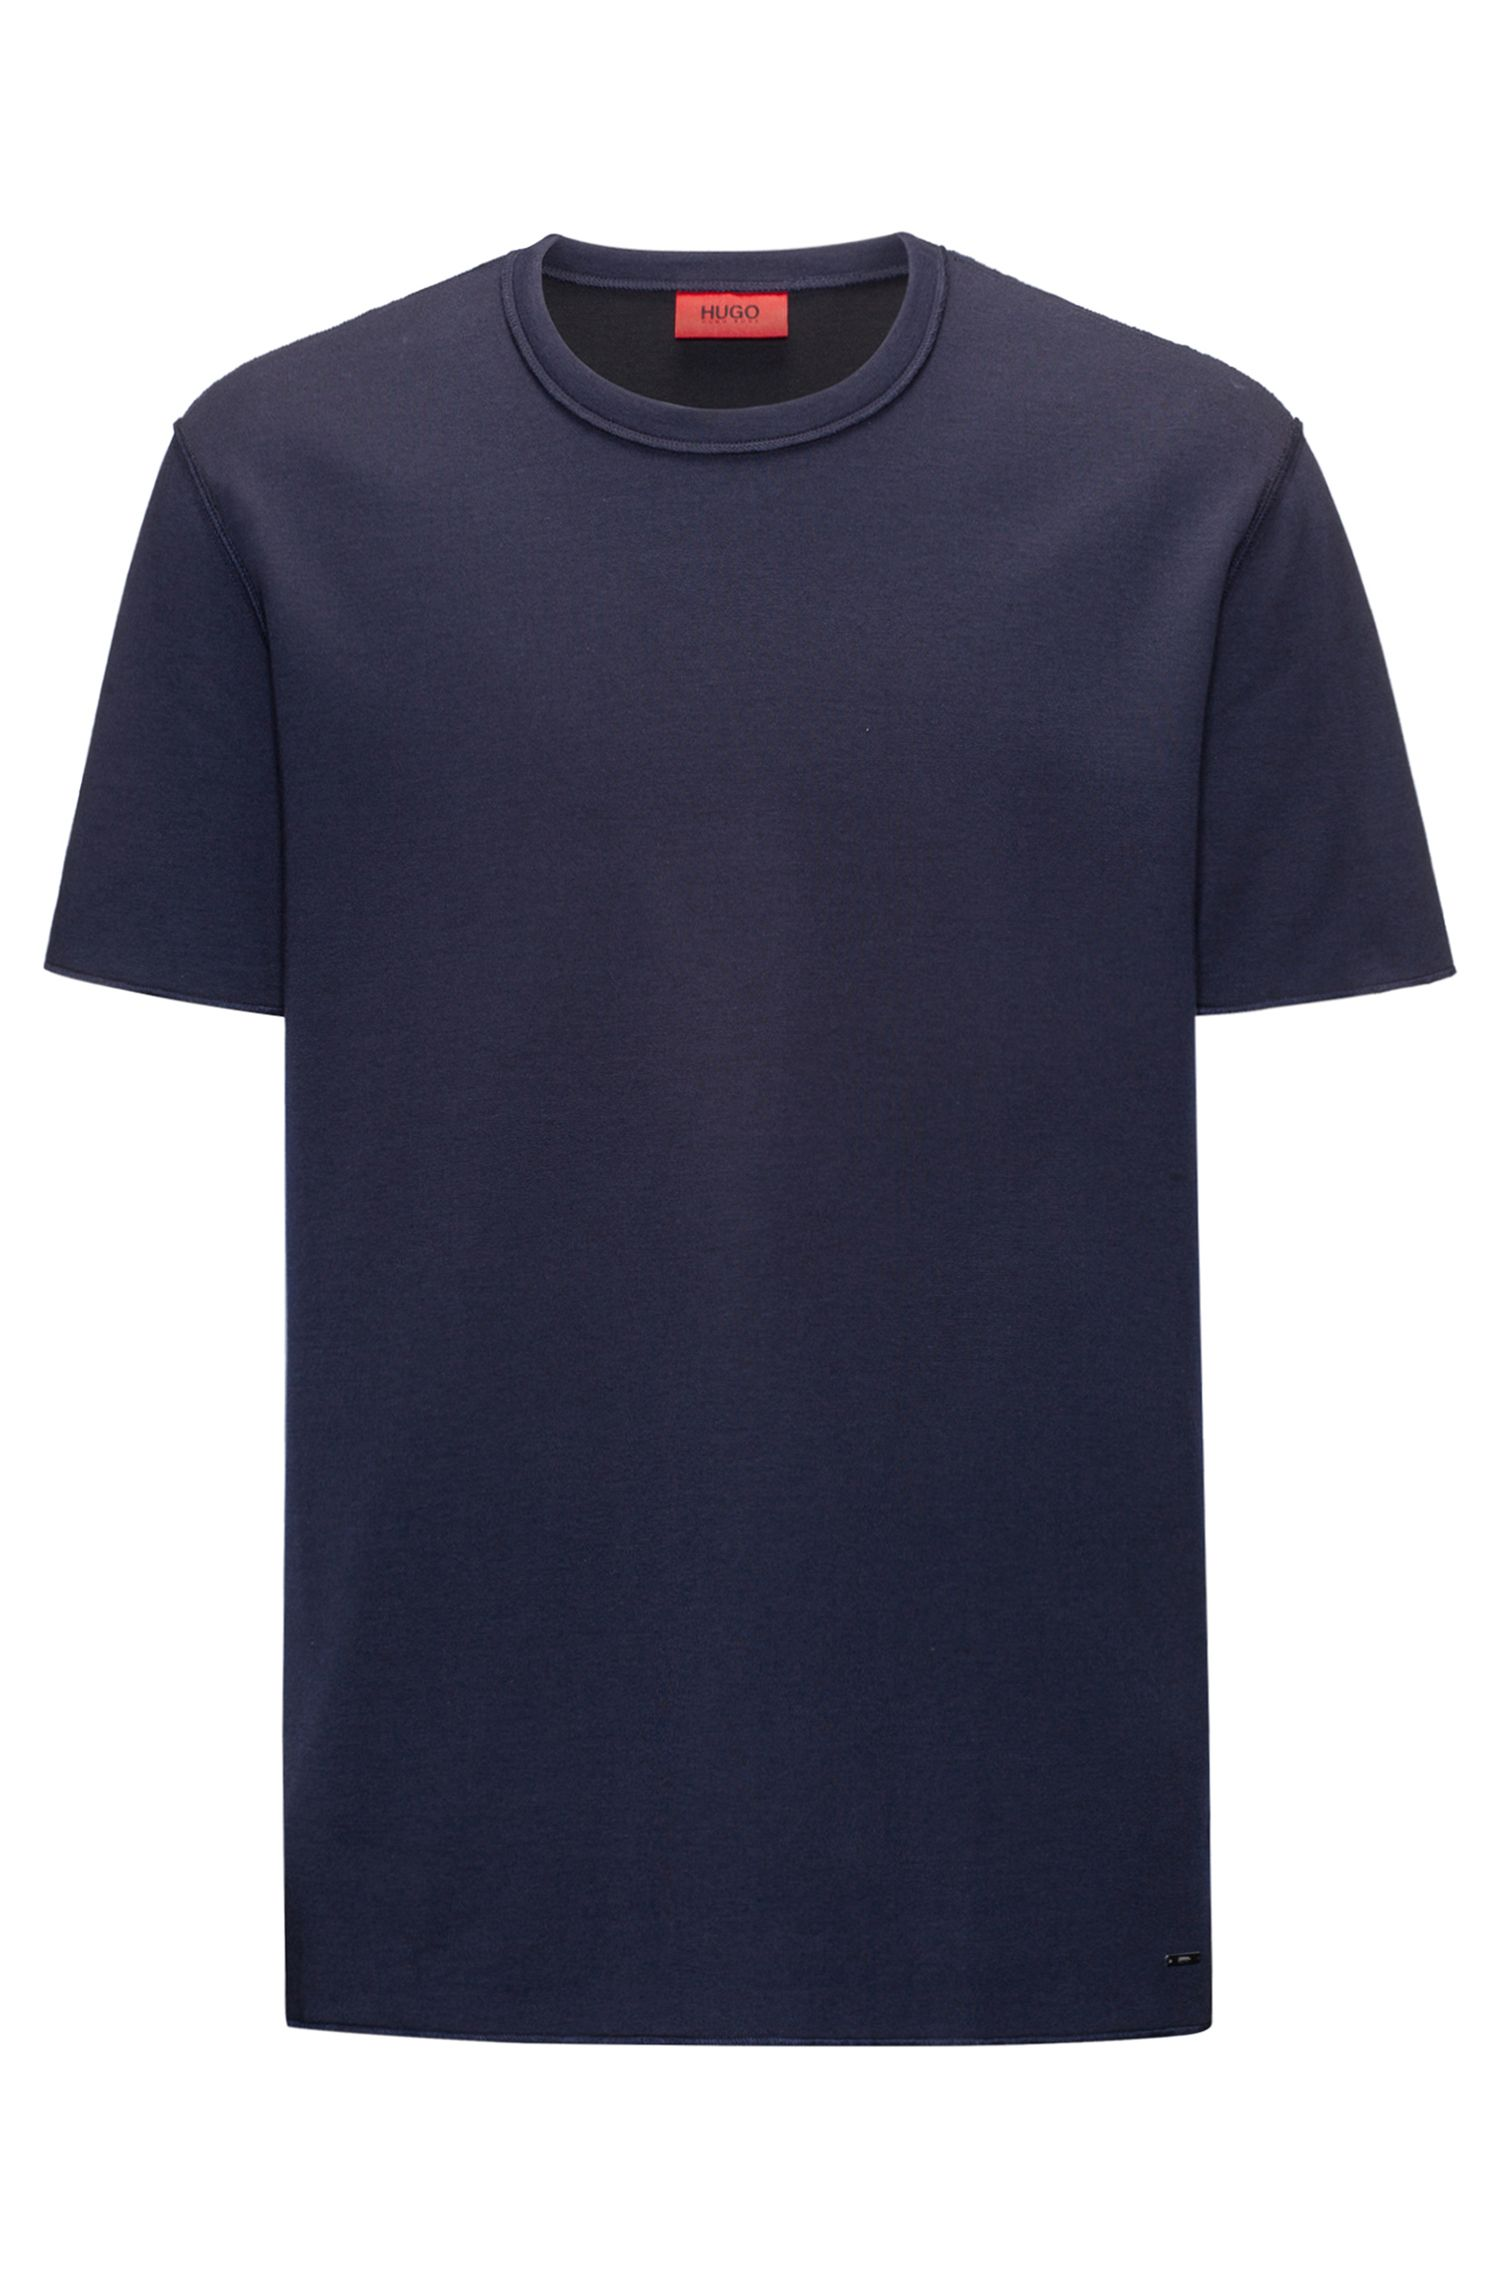 Relaxed-fit T-shirt in a double-face cotton blend